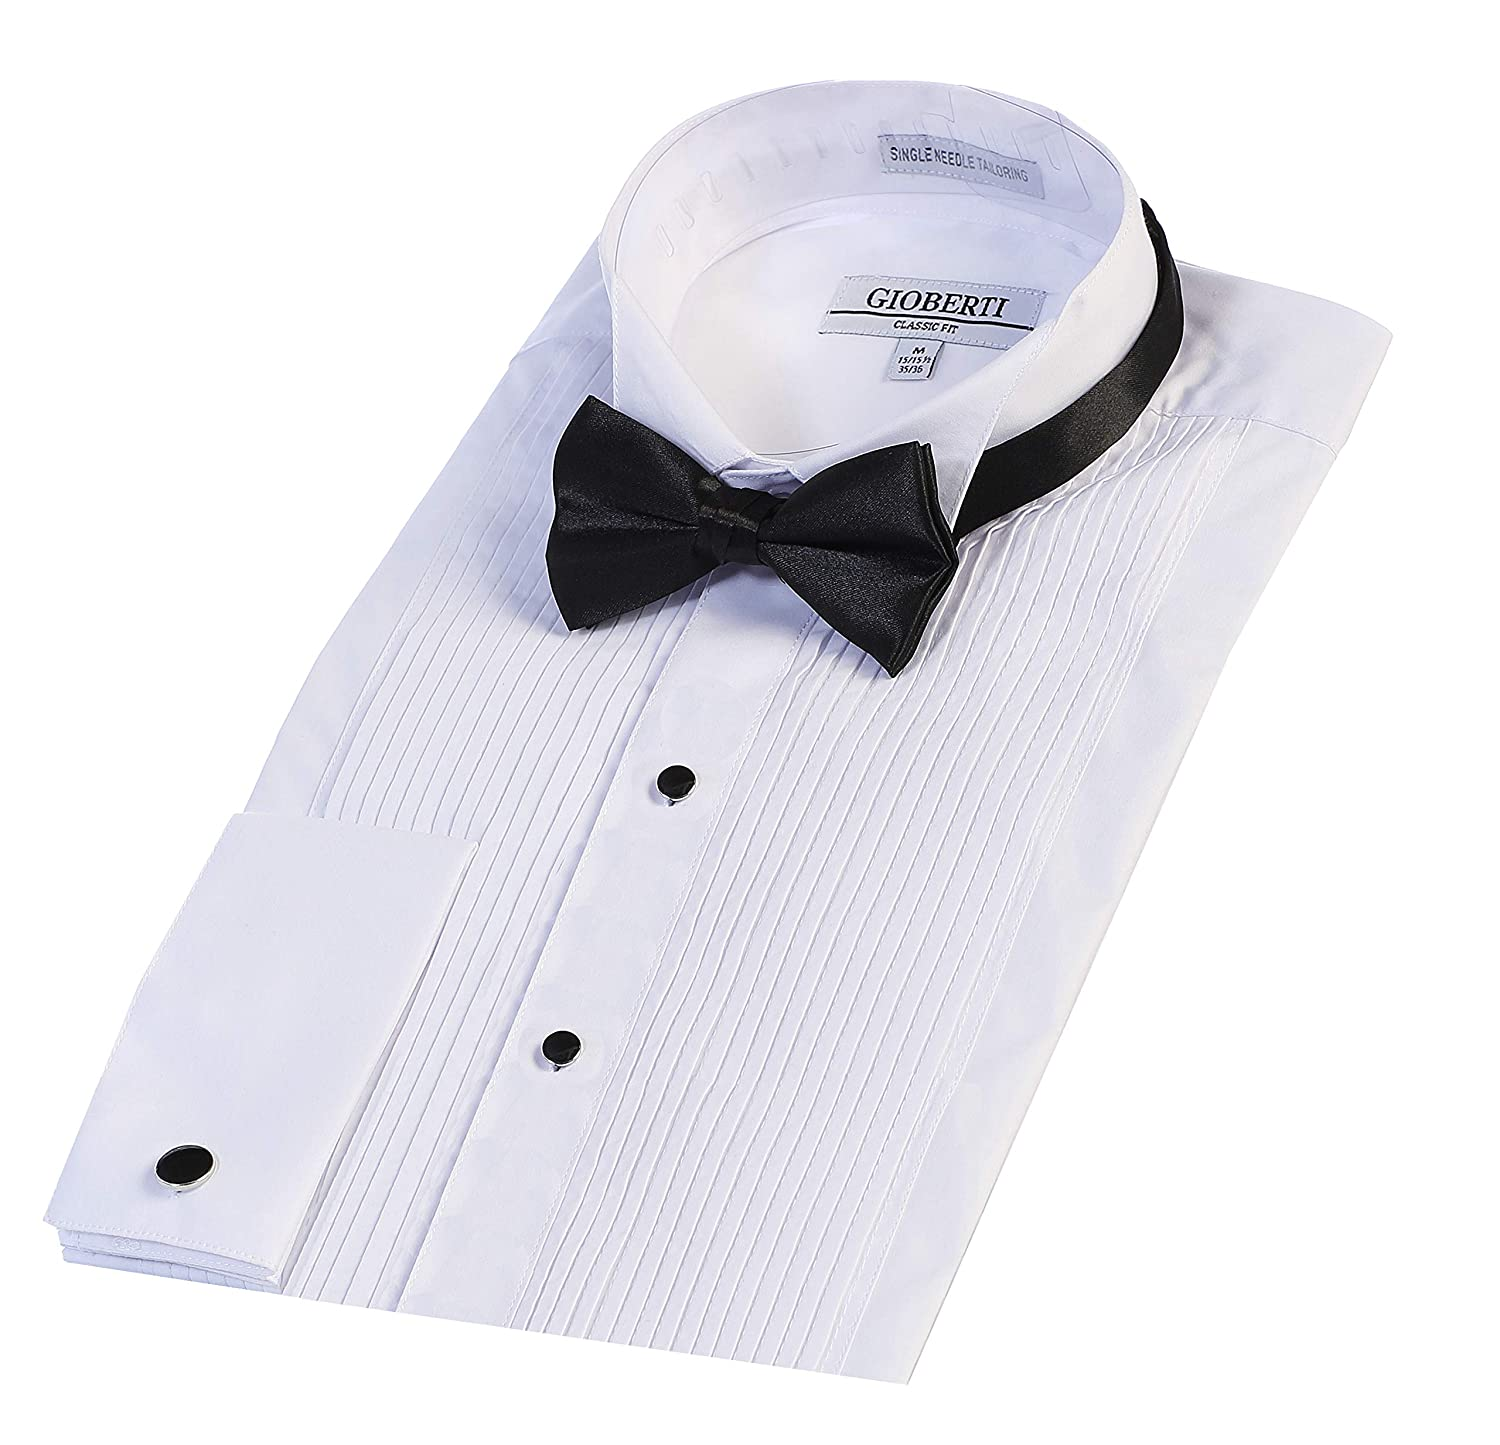 Gioberti Mens Wing Tip Collar White Tuxedo Dress Shirt with Bow Tie